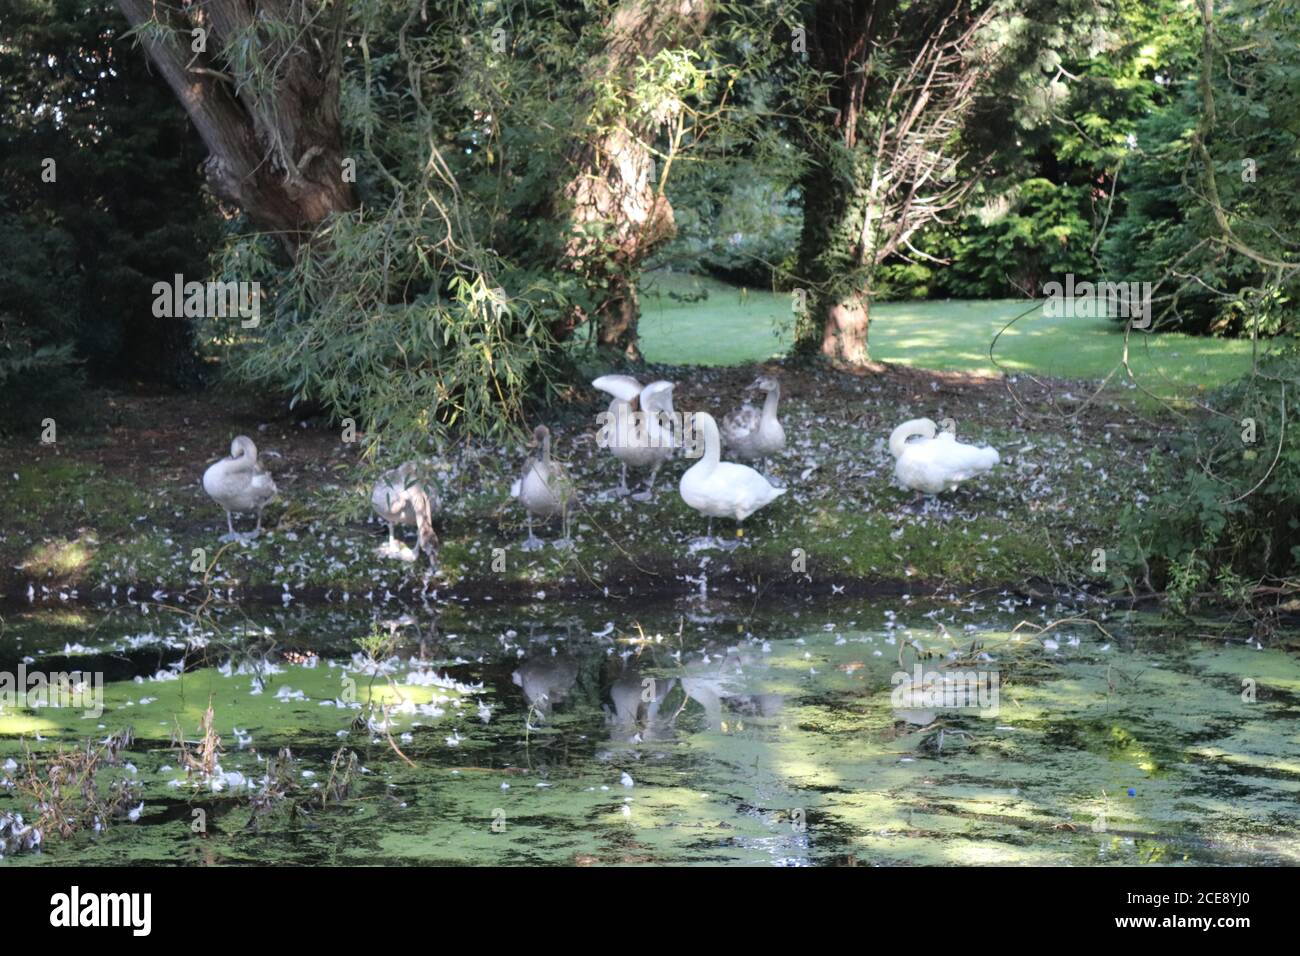 TWO SWANS WITH THEIR FIVE SYGNETS ON THE CANAL FROM WOMBWELL TO ELSECAR,BARNSLEY,SOUTH YORKSHIRE,ENGLAND. Stock Photo